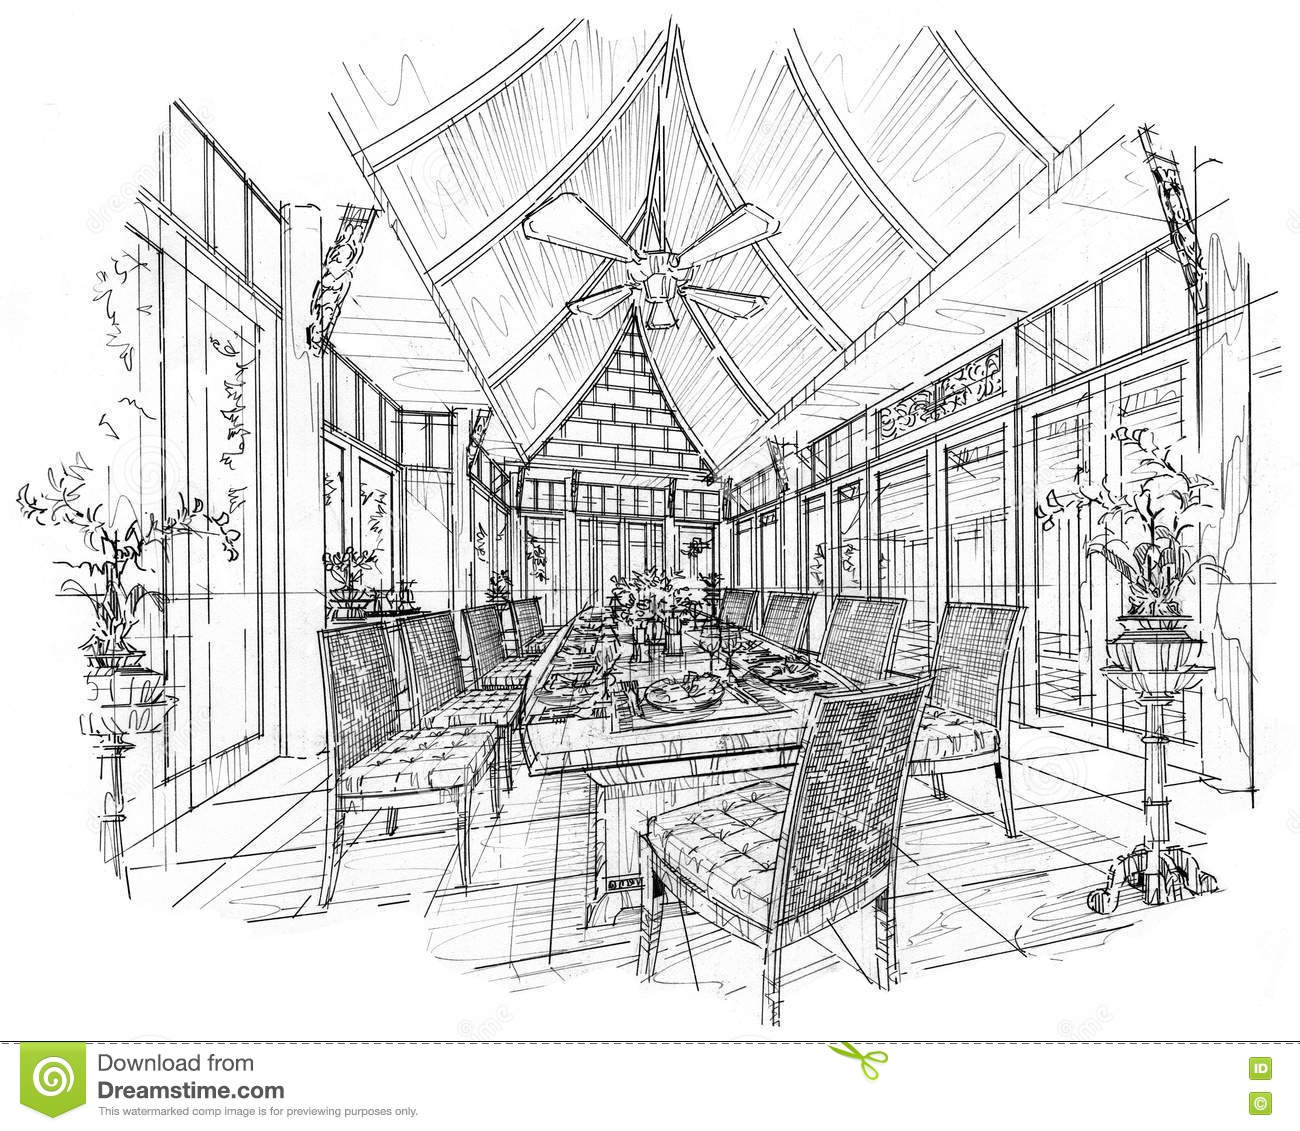 Dining room perspective drawing - Black Design Dining Interior Perspective Room